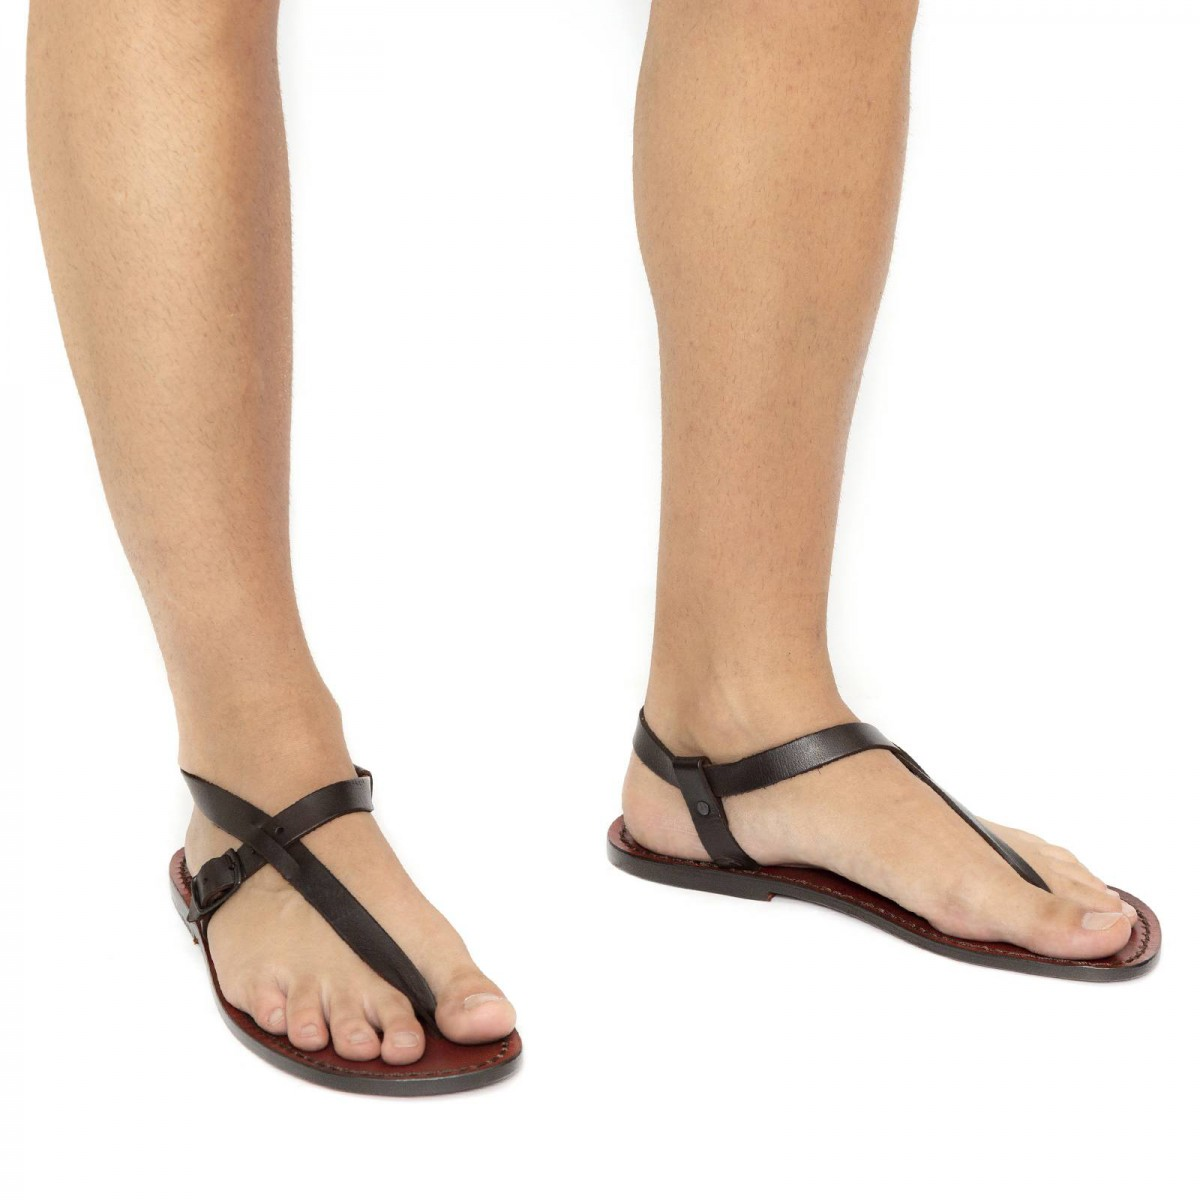 b525aef5ce06eb Handmade brown leather thong sandals for men. Previous. Next